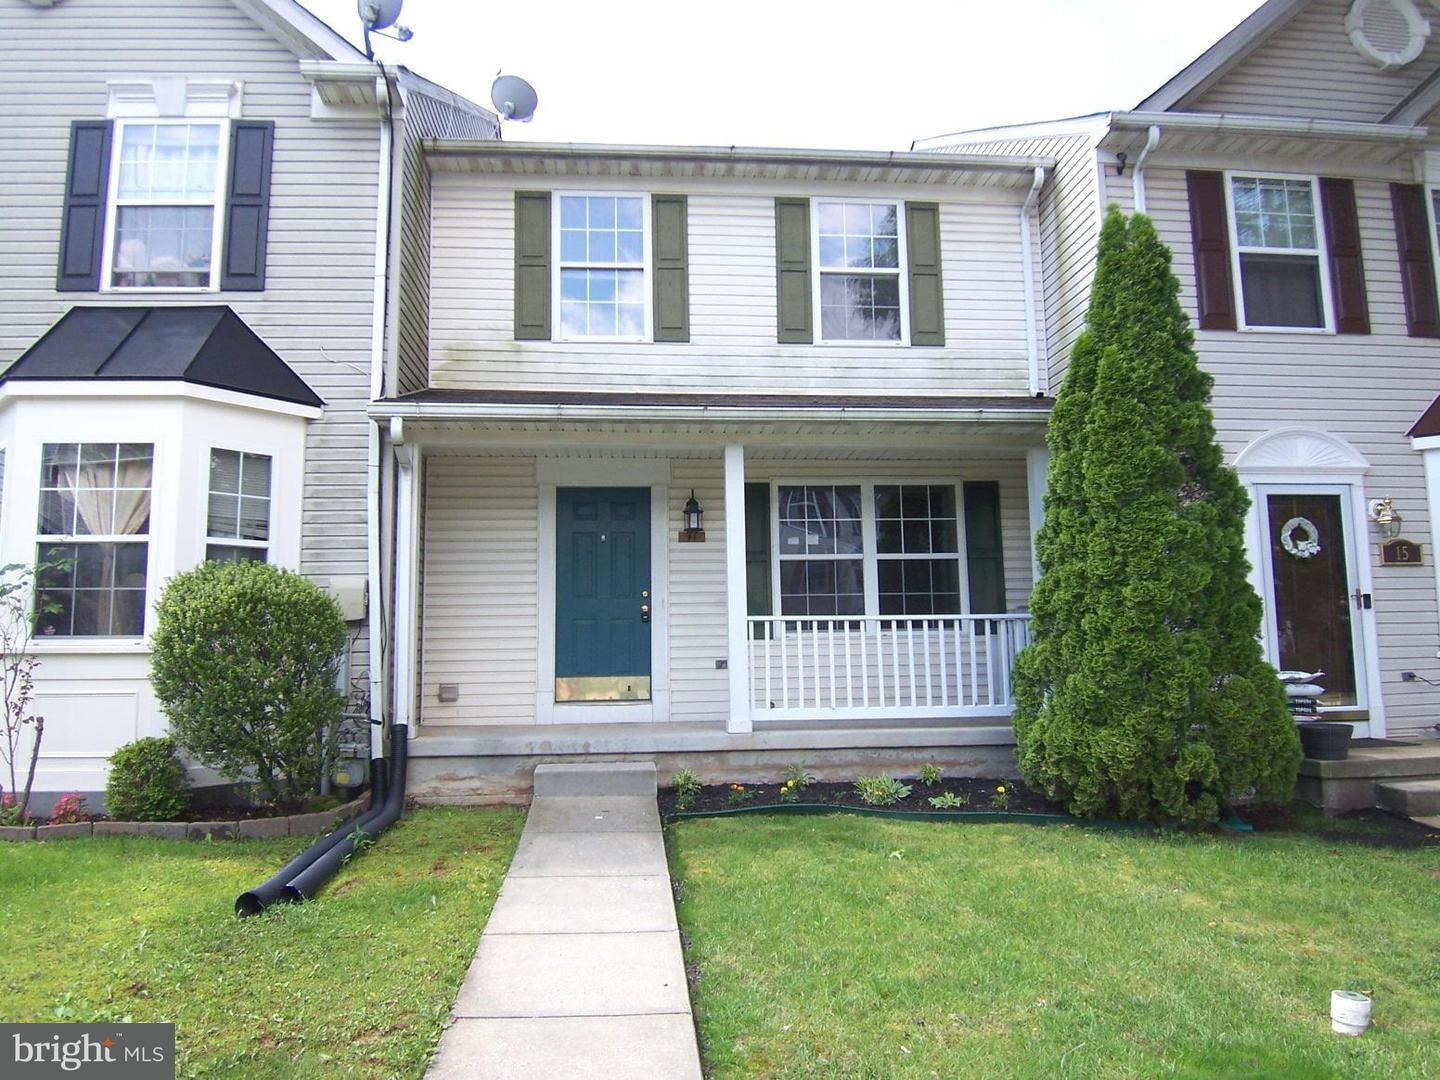 Other Residential for Rent at 11 Arrowood Ct Rosedale, Maryland 21237 United States